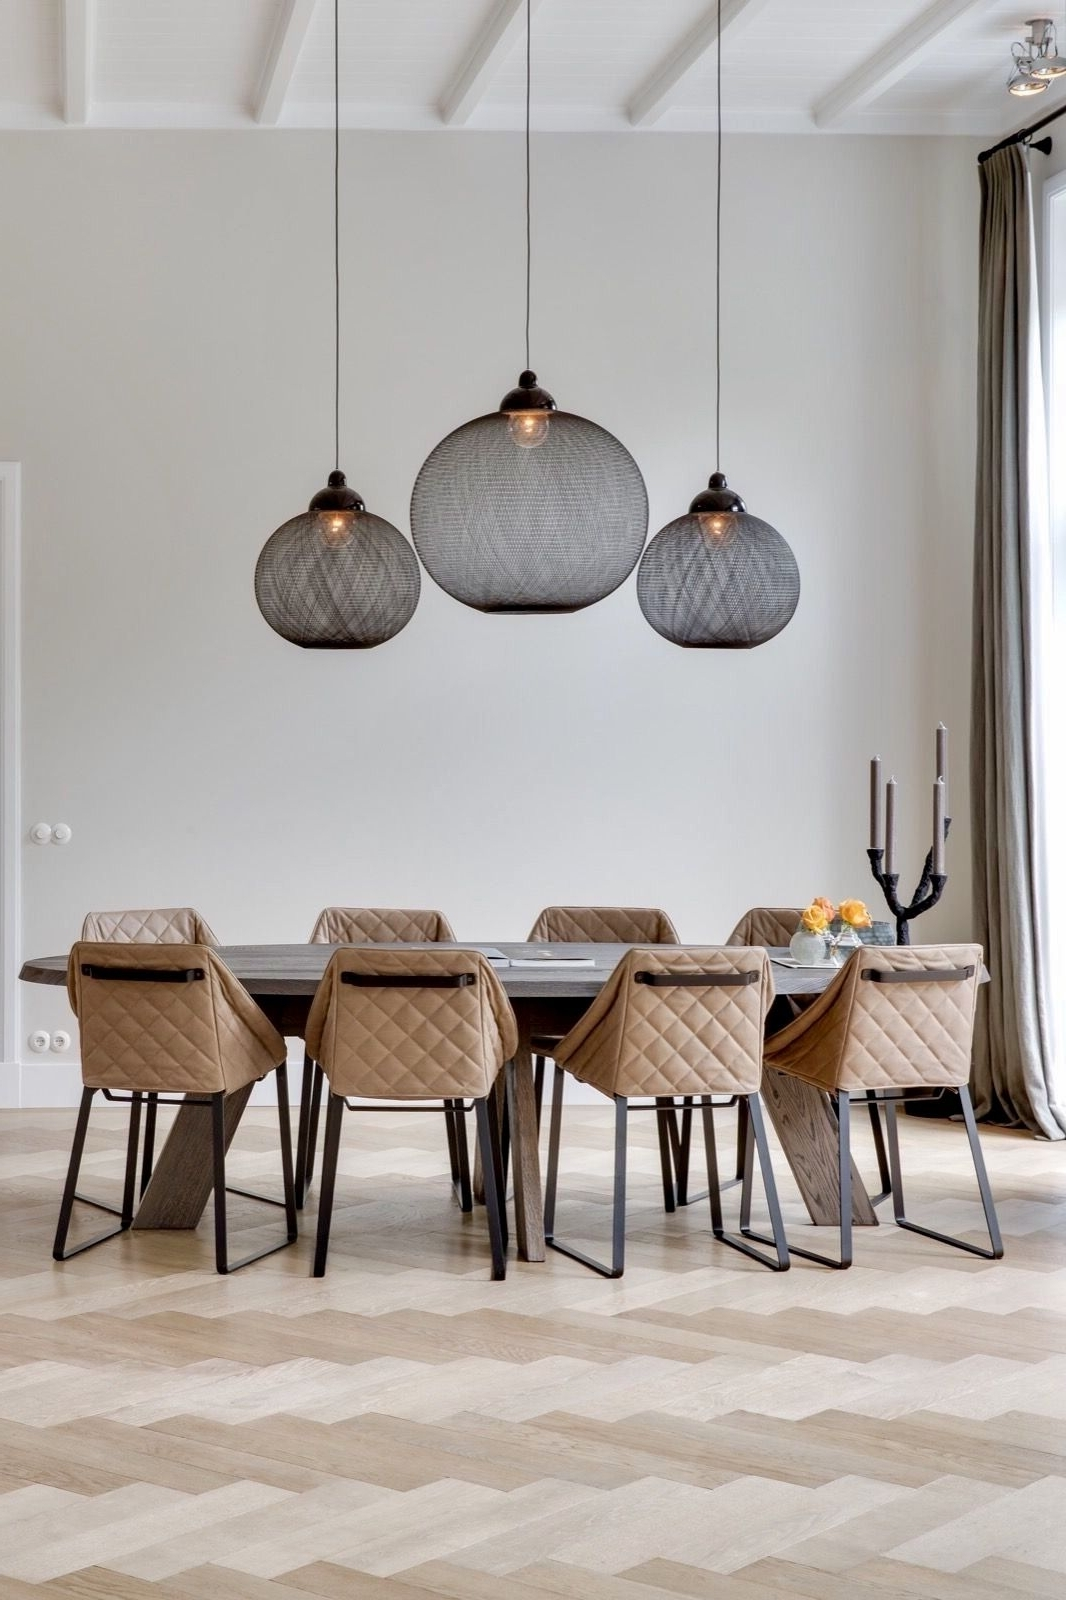 22 Best Ideas Of Pendant Lighting For Kitchen, Dining Room And Regarding 2017 Dining Tables Lights (View 5 of 25)